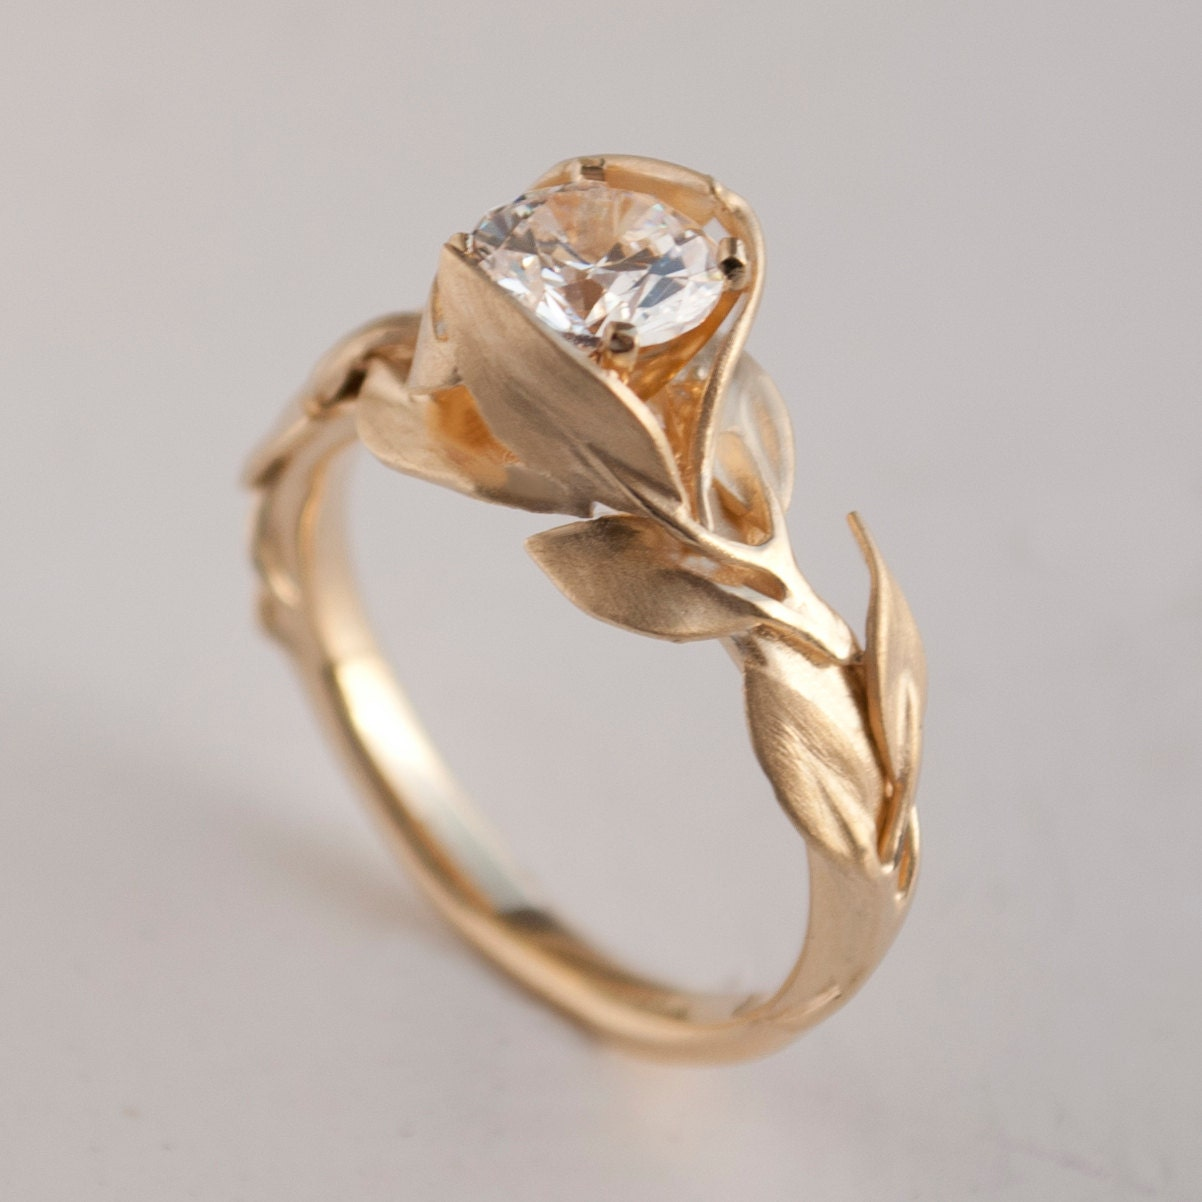 gold wedding rings gold engagement ring no diamond With no diamond wedding rings